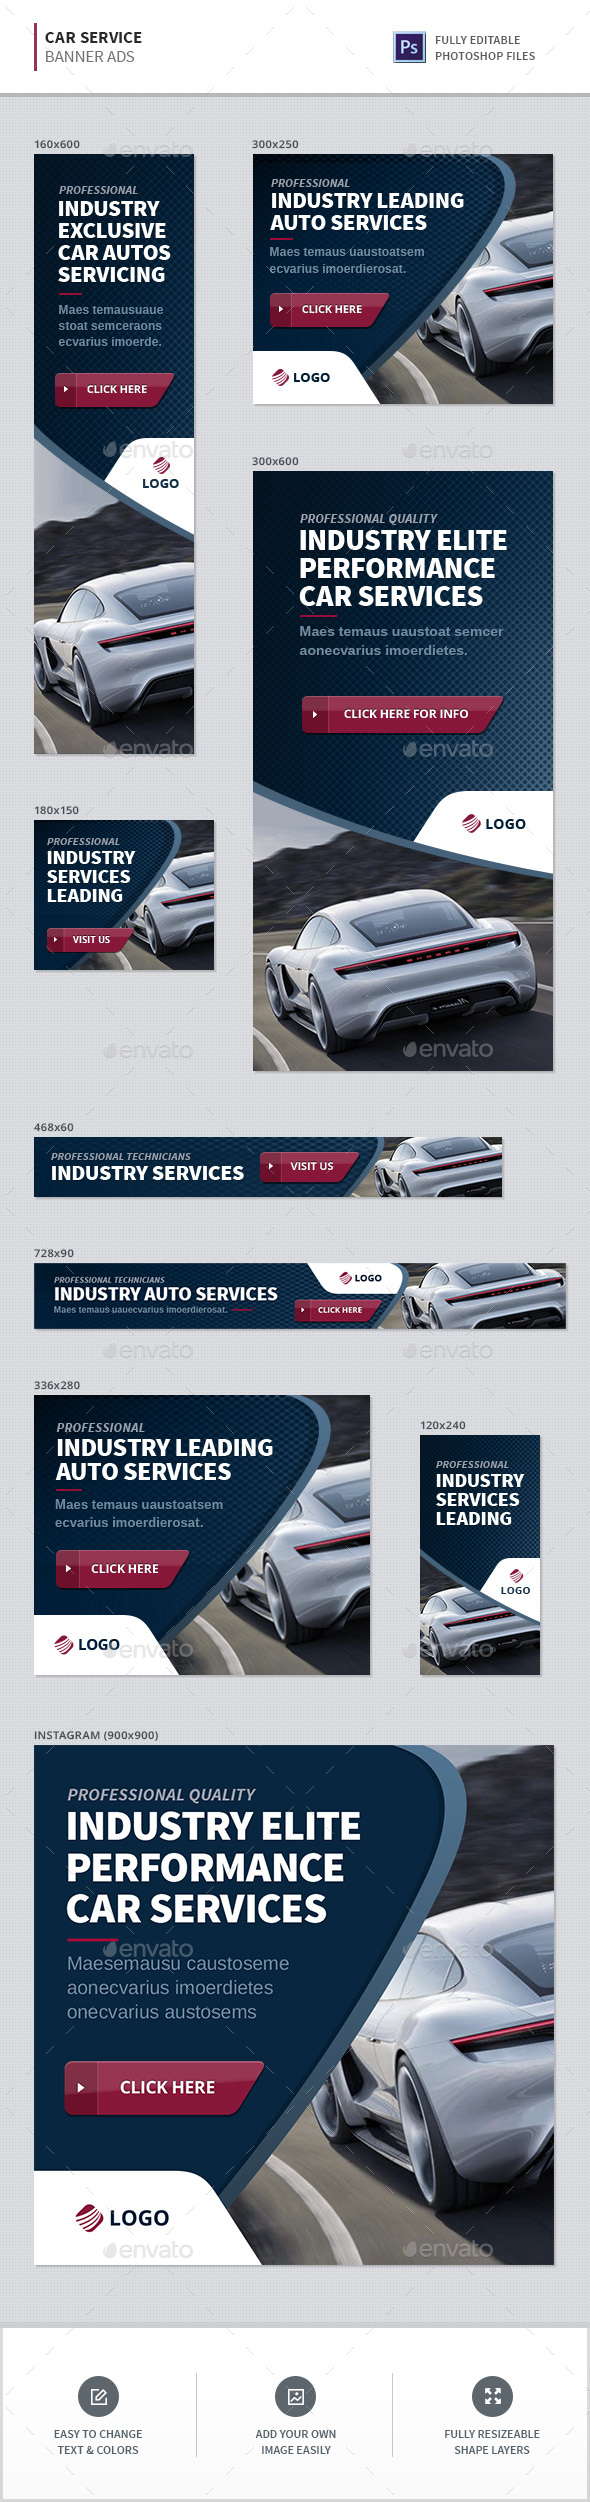 Car Service Banners - Banners & Ads Web Elements